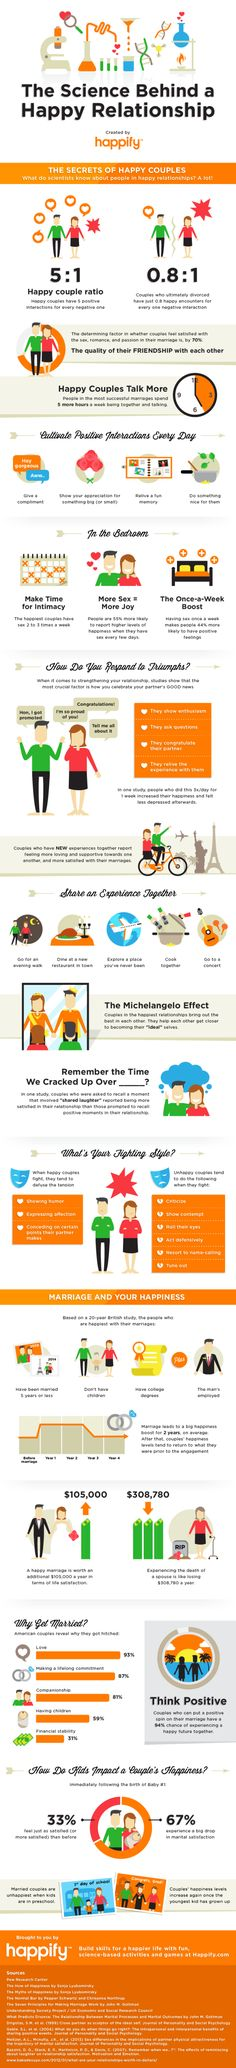 http://dailyinfographic.com/wp-content/uploads/2014/02/infographic-love.png